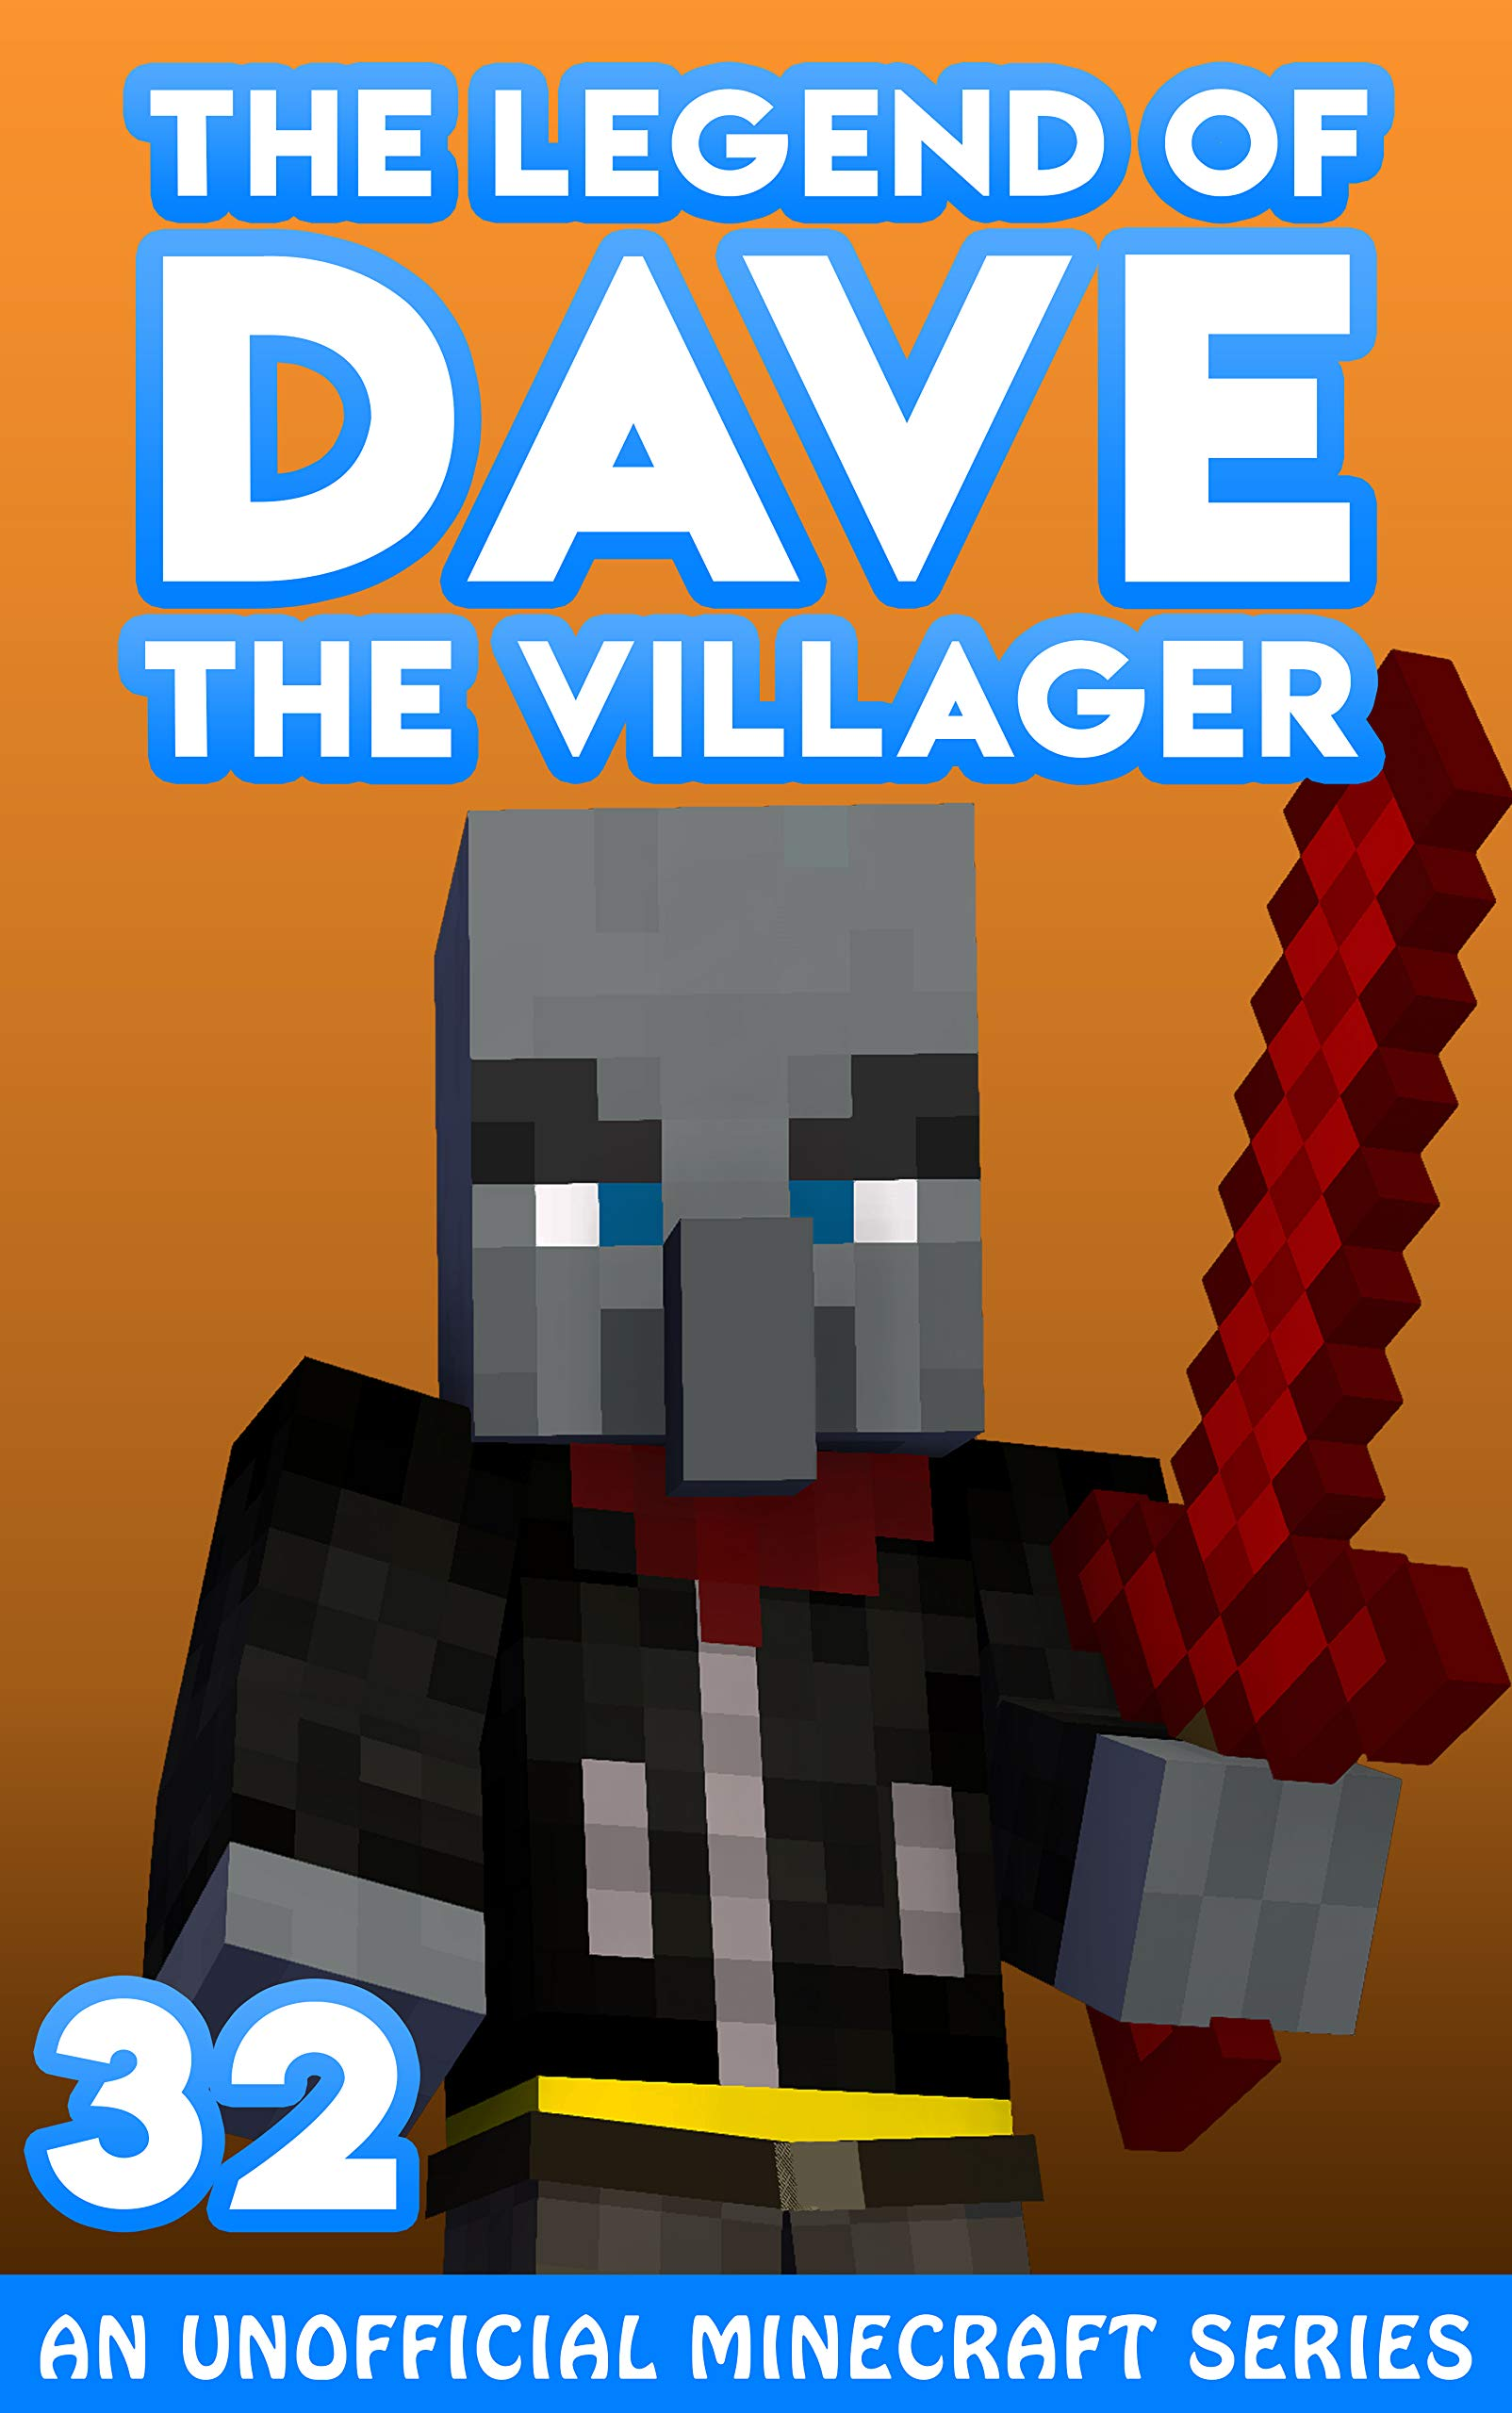 Dave the Villager 32: An Unofficial Minecraft Series